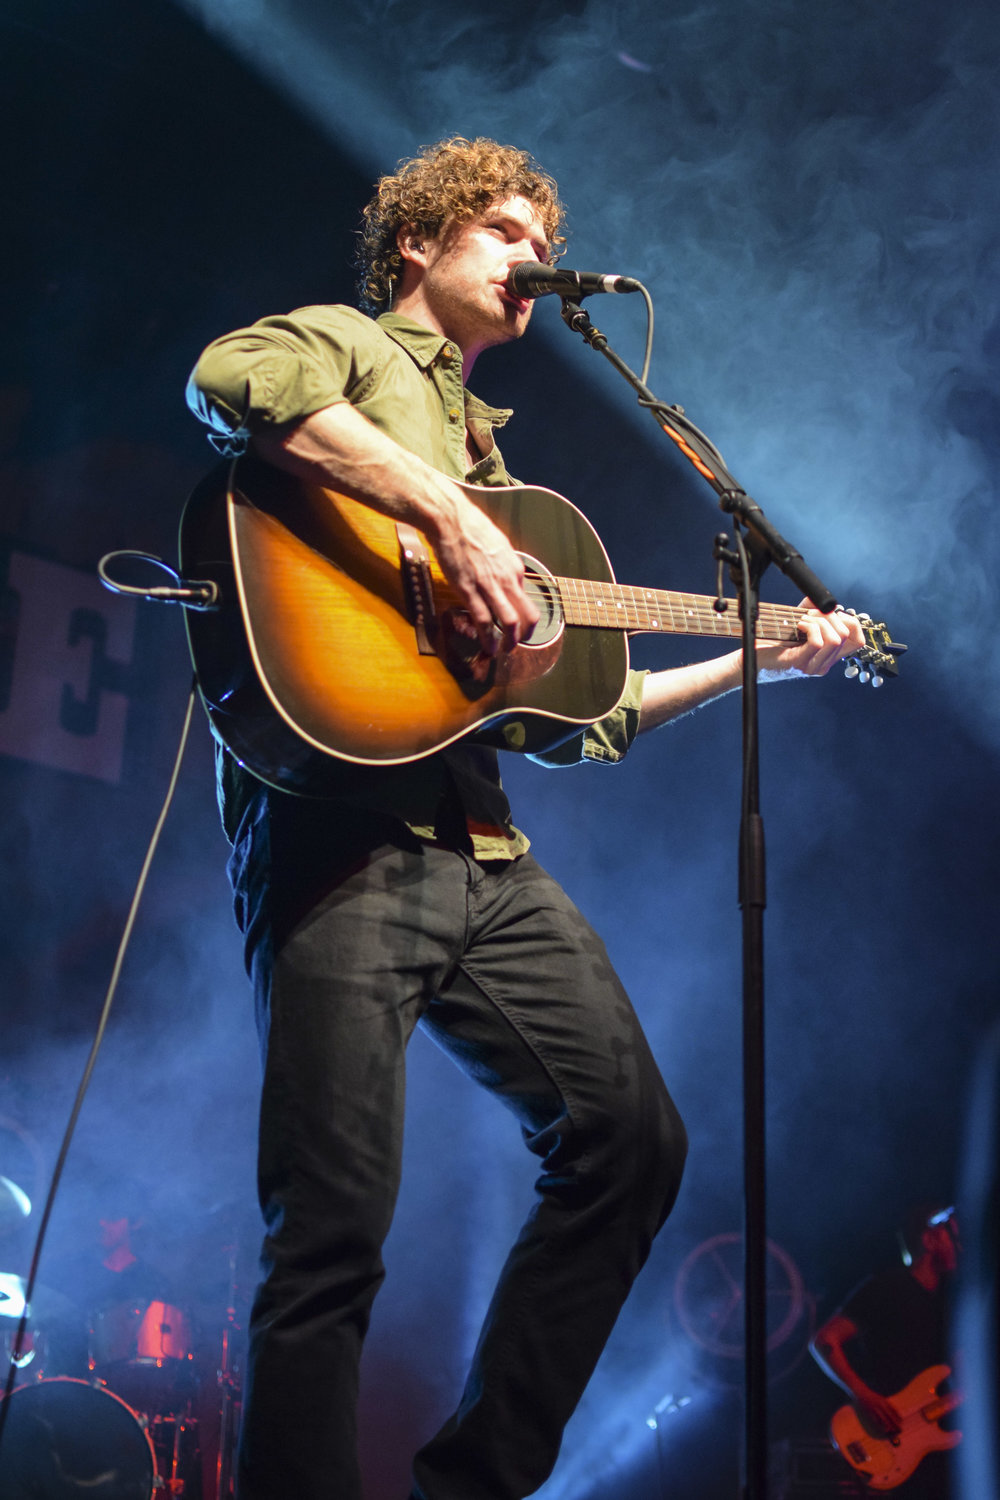 VanceJoy_Feb2016DSC_0183_Edited_Small.jpg